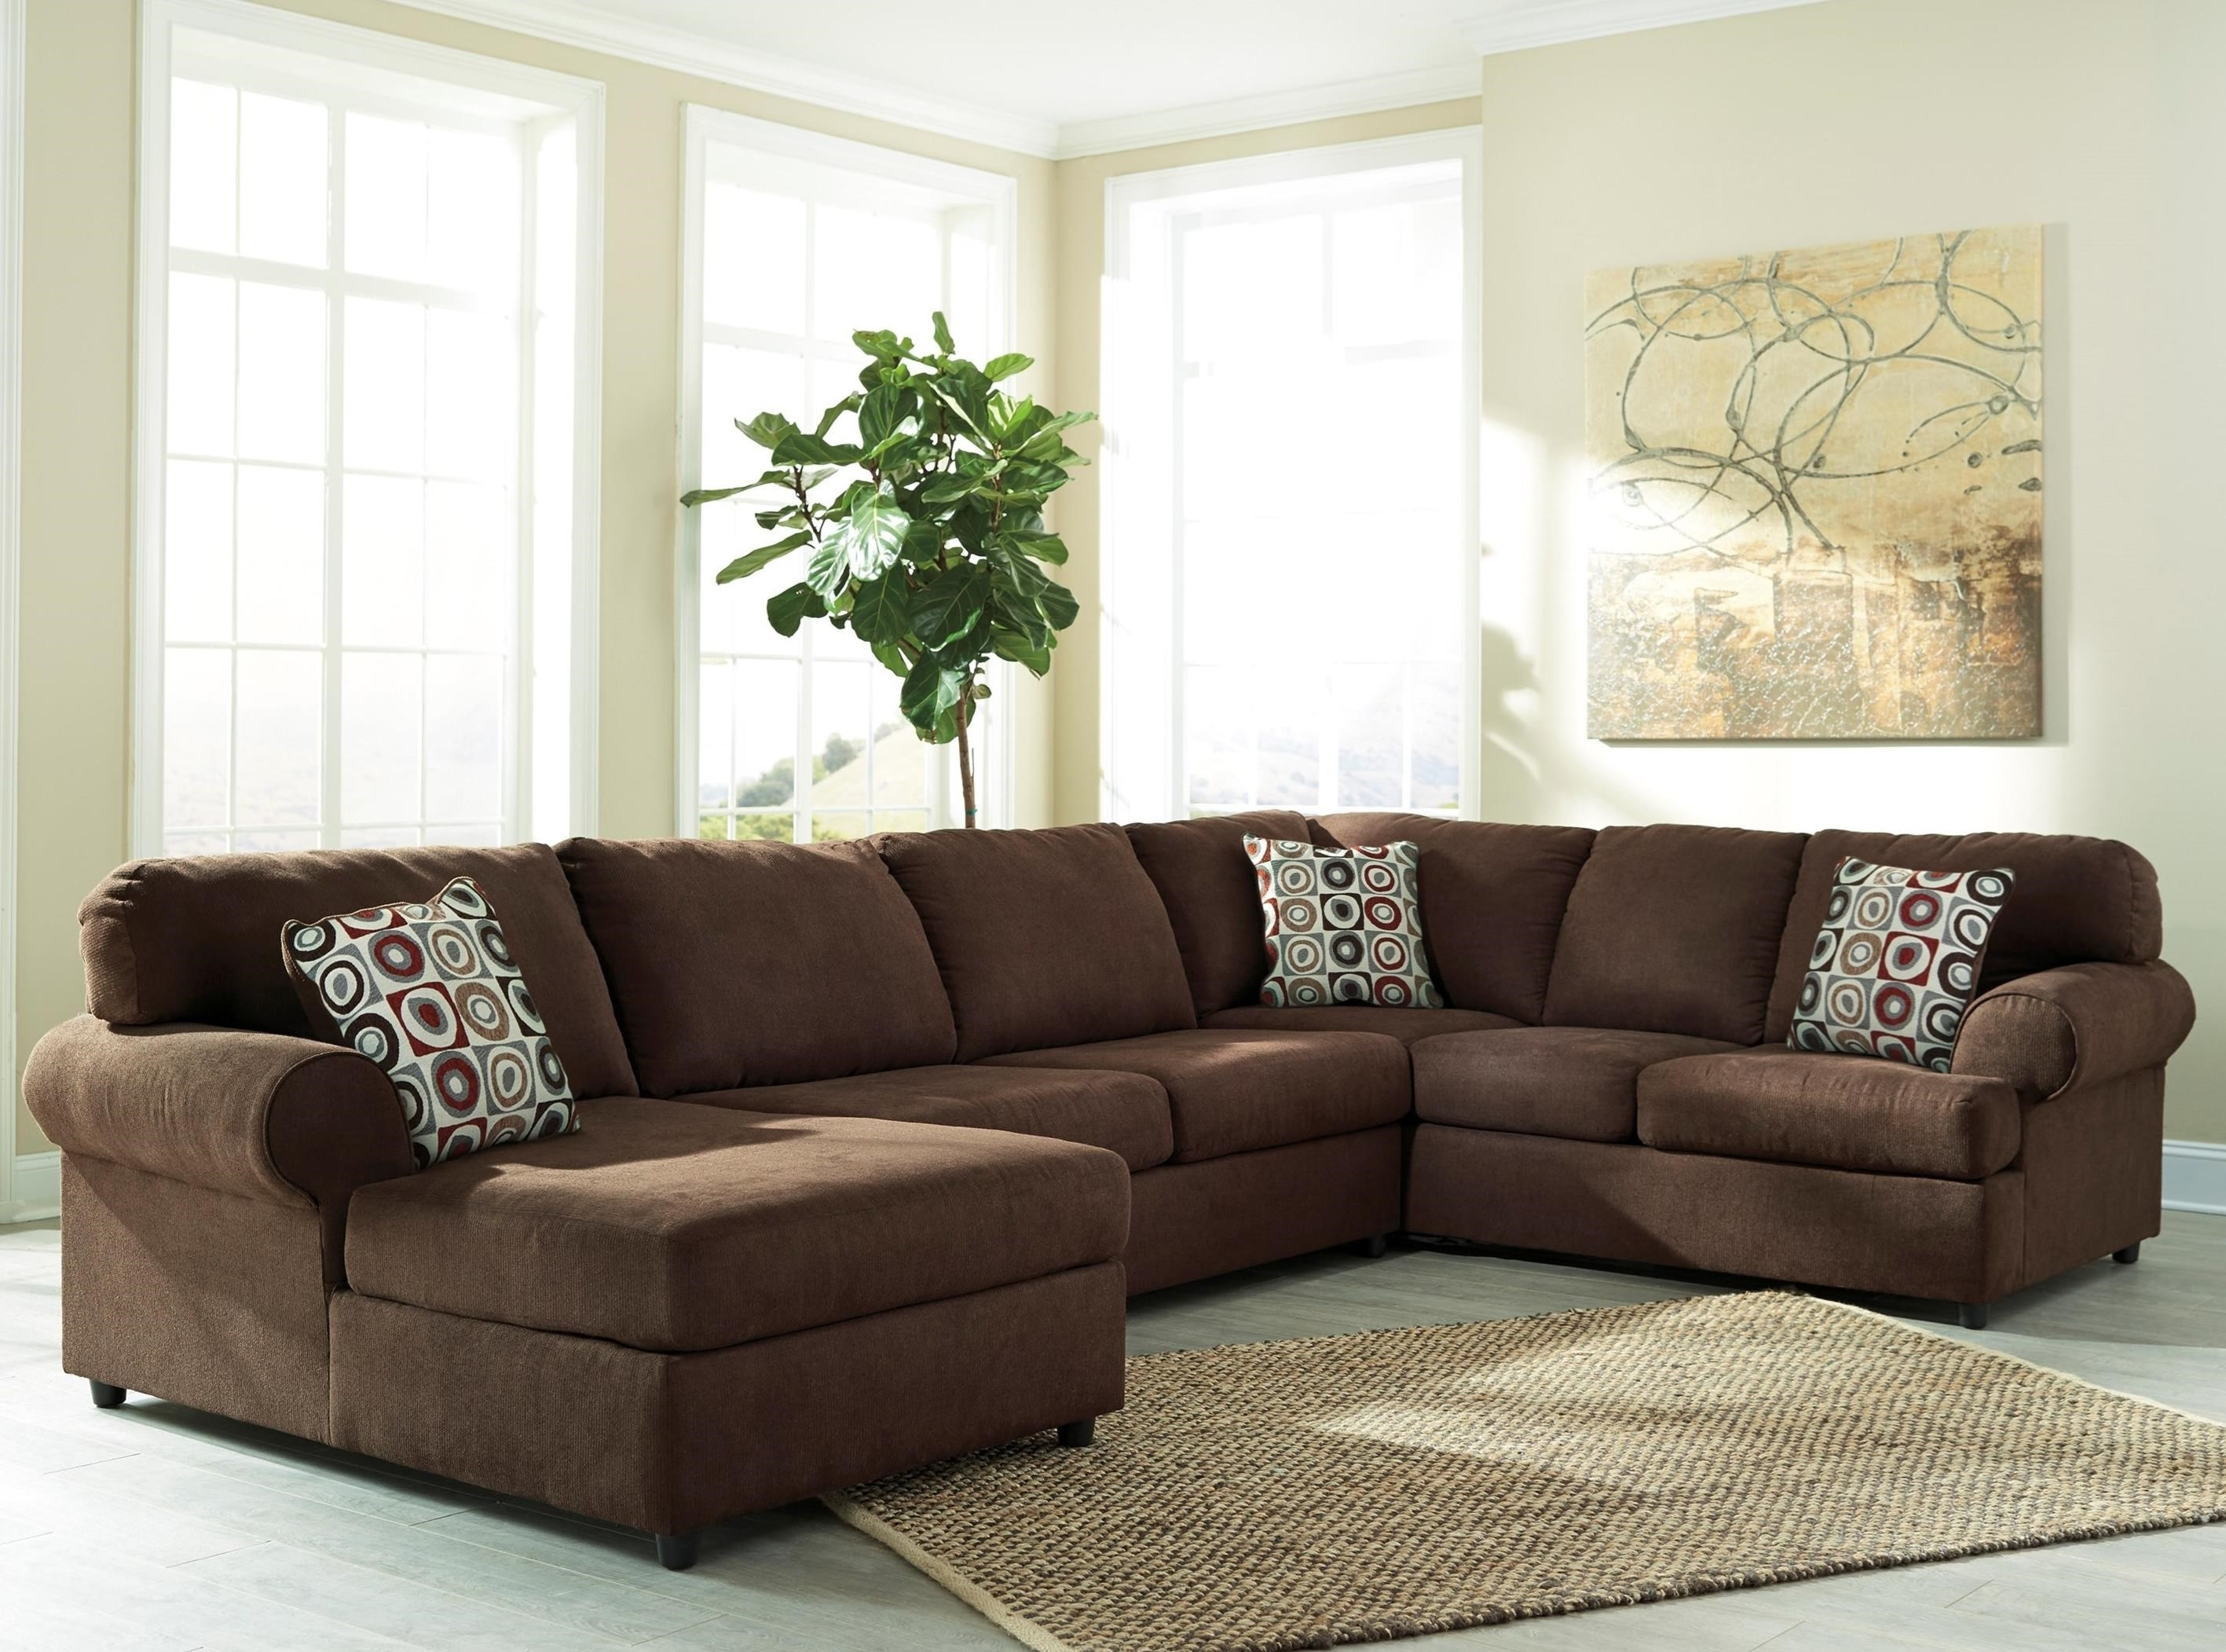 Signature Designashley Jayceon 3 Piece Sectional With Left For East Bay Sectional Sofas (View 10 of 10)